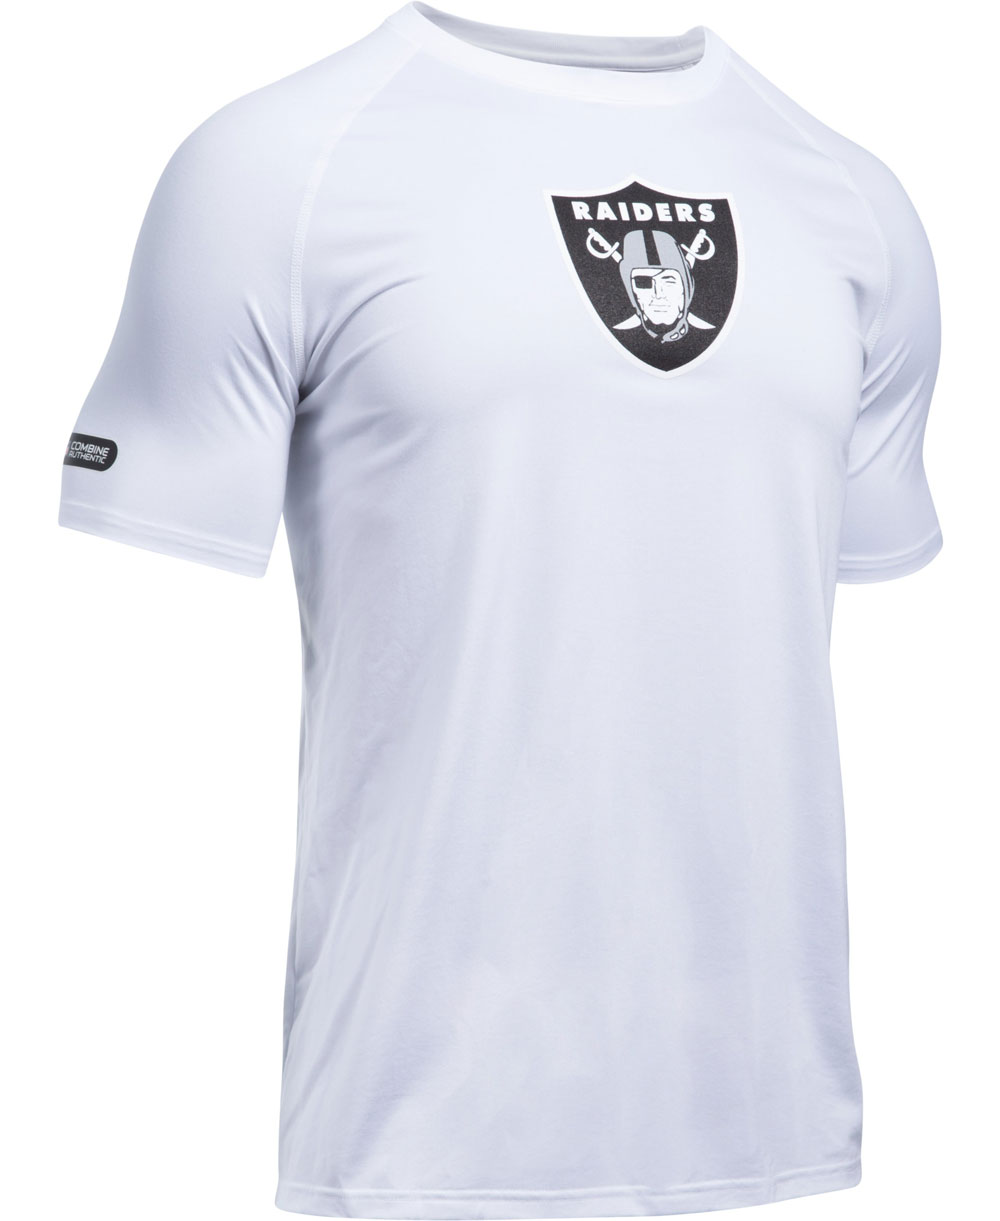 NFL Combine Authentic UA Tech T-Shirt Manica Corta Uomo Oakland Raiders